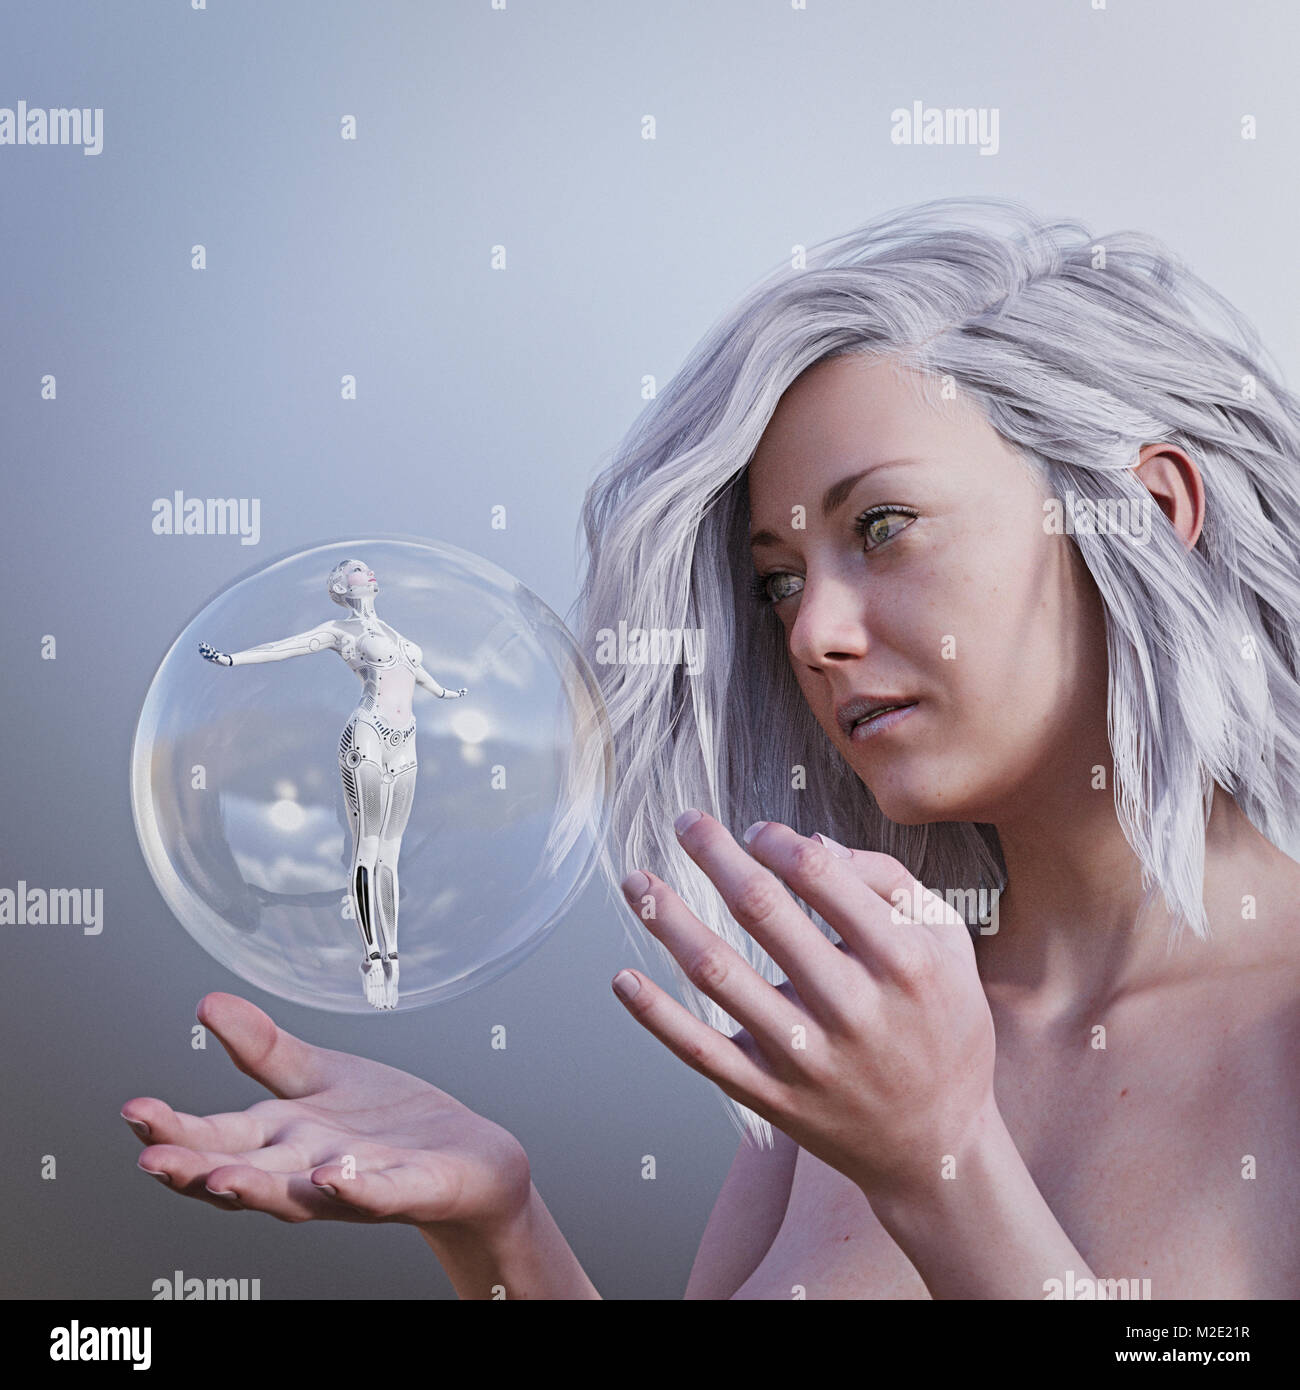 Women watching robot woman in floating sphere Stock Photo